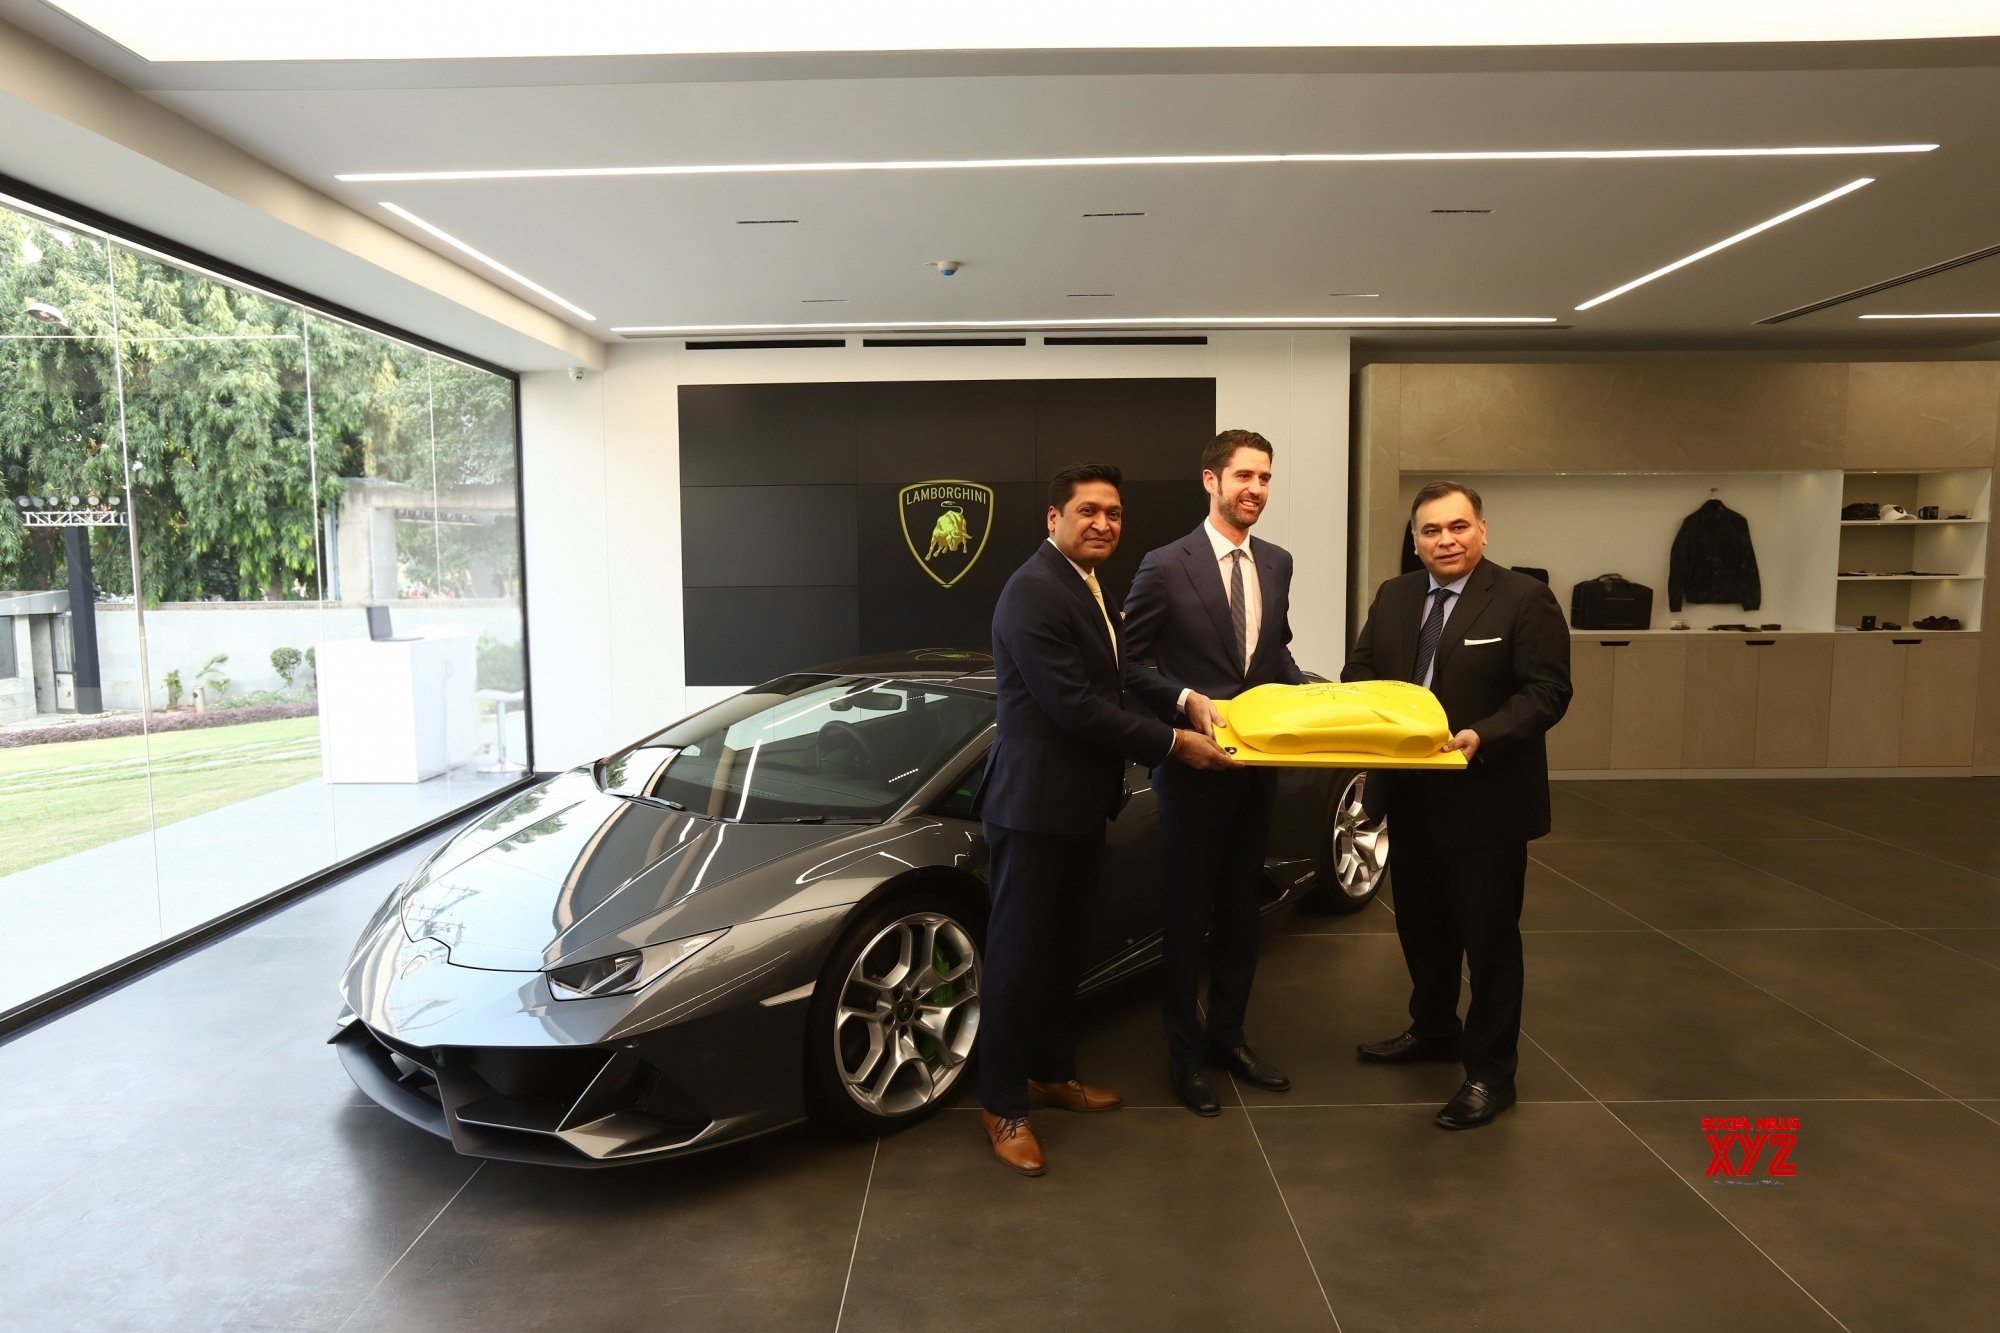 New Delhi: Opening of Lamborghini Indias new showroom #Gallery